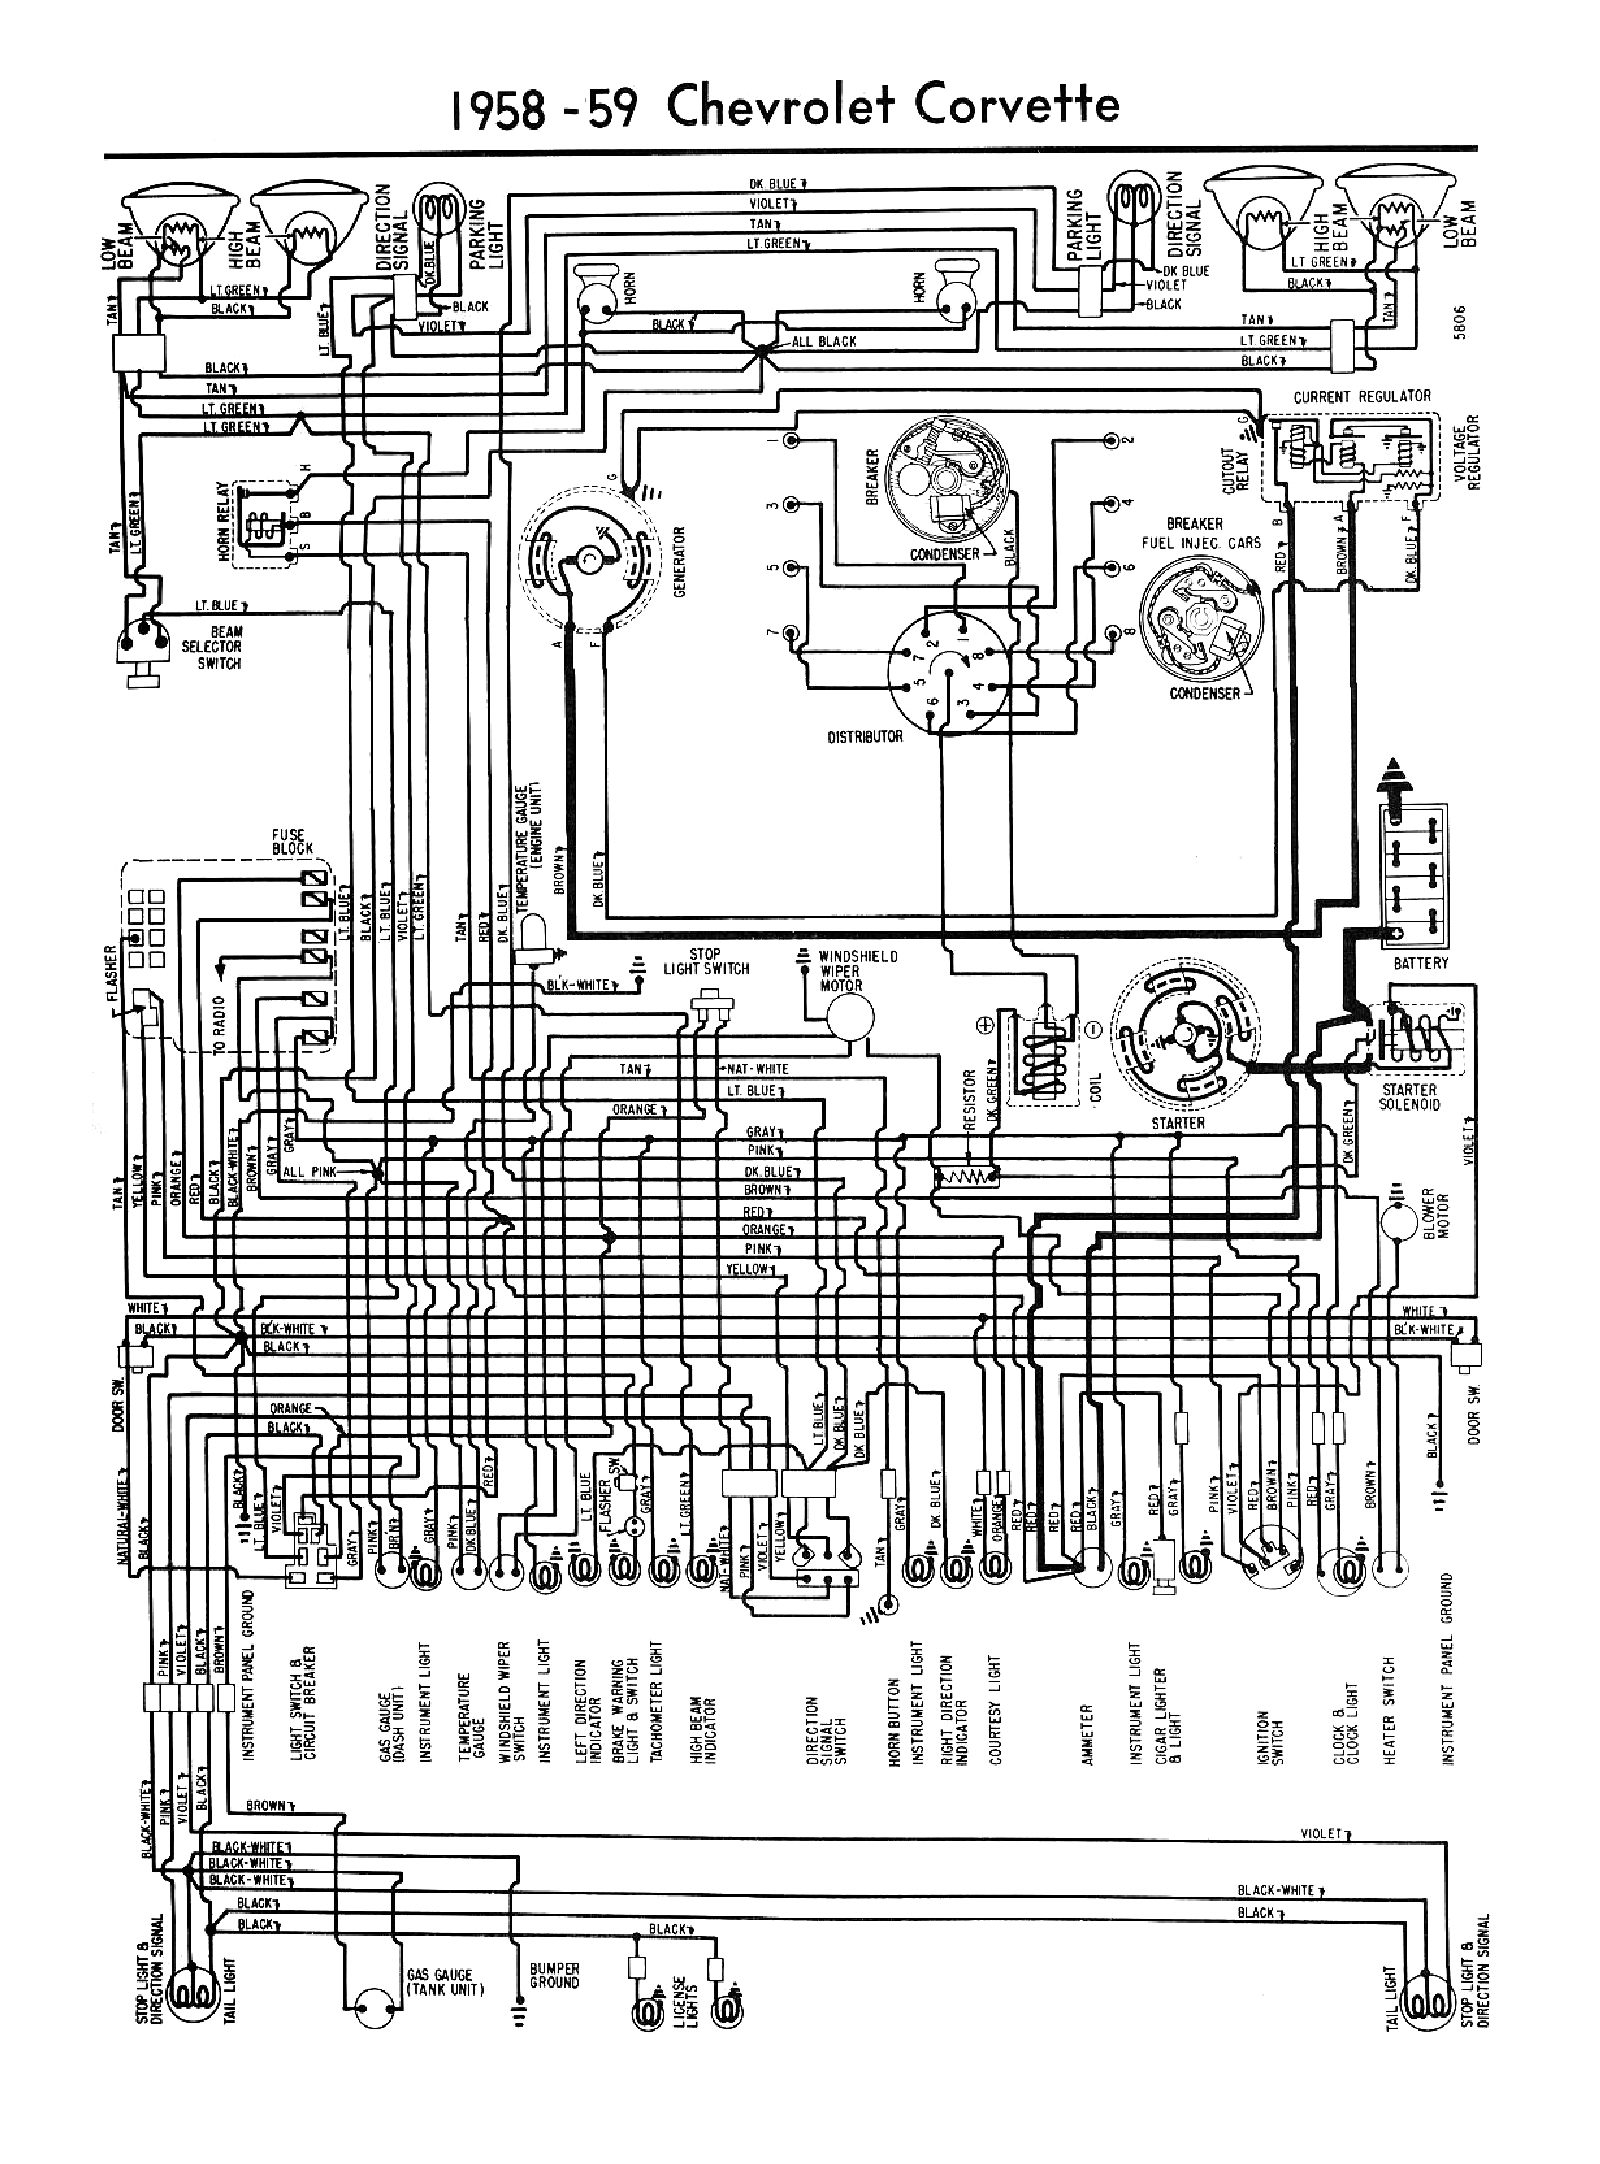 1959 Lincoln Wiring Diagram Data 1997 Corvette Continental Throttle